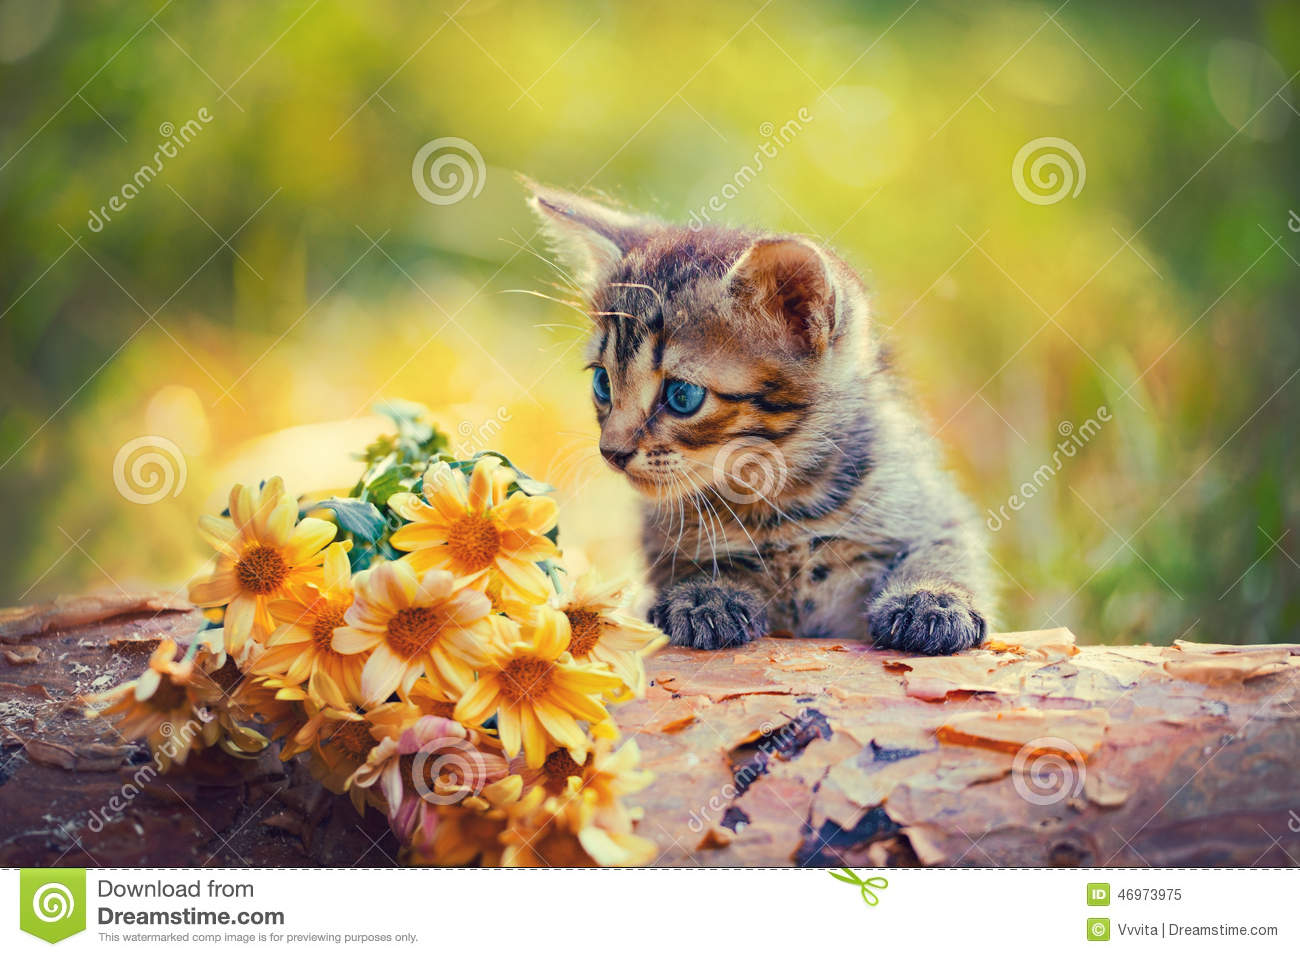 Cute Little Gray Cat For Wallpaper Kitten Looking At Flowers Stock Photo Image 46973975